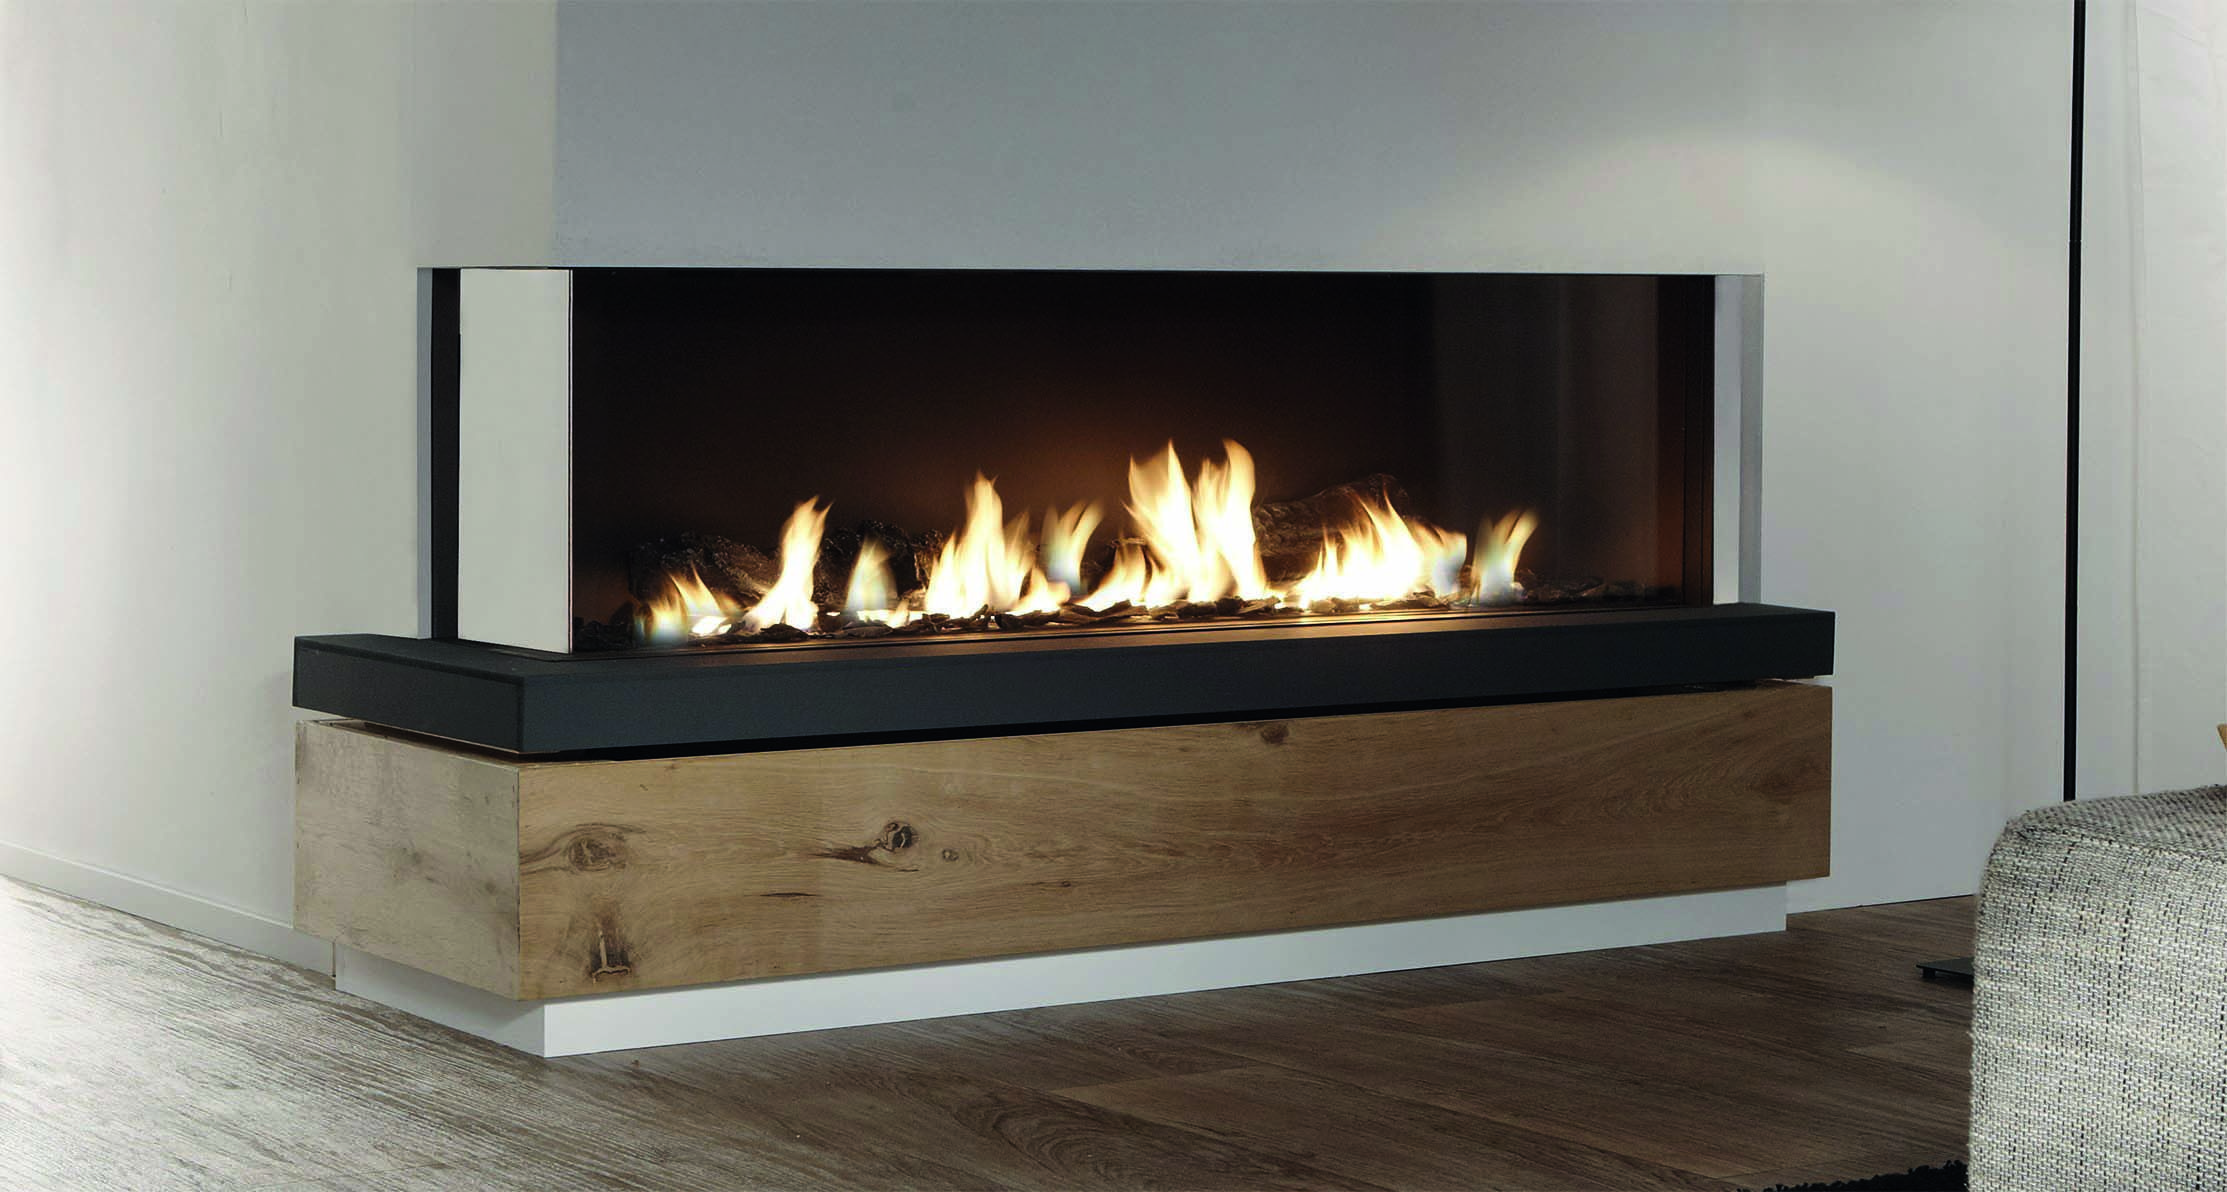 gaskamin von r egg gaskamin gas fireplace fireplace. Black Bedroom Furniture Sets. Home Design Ideas